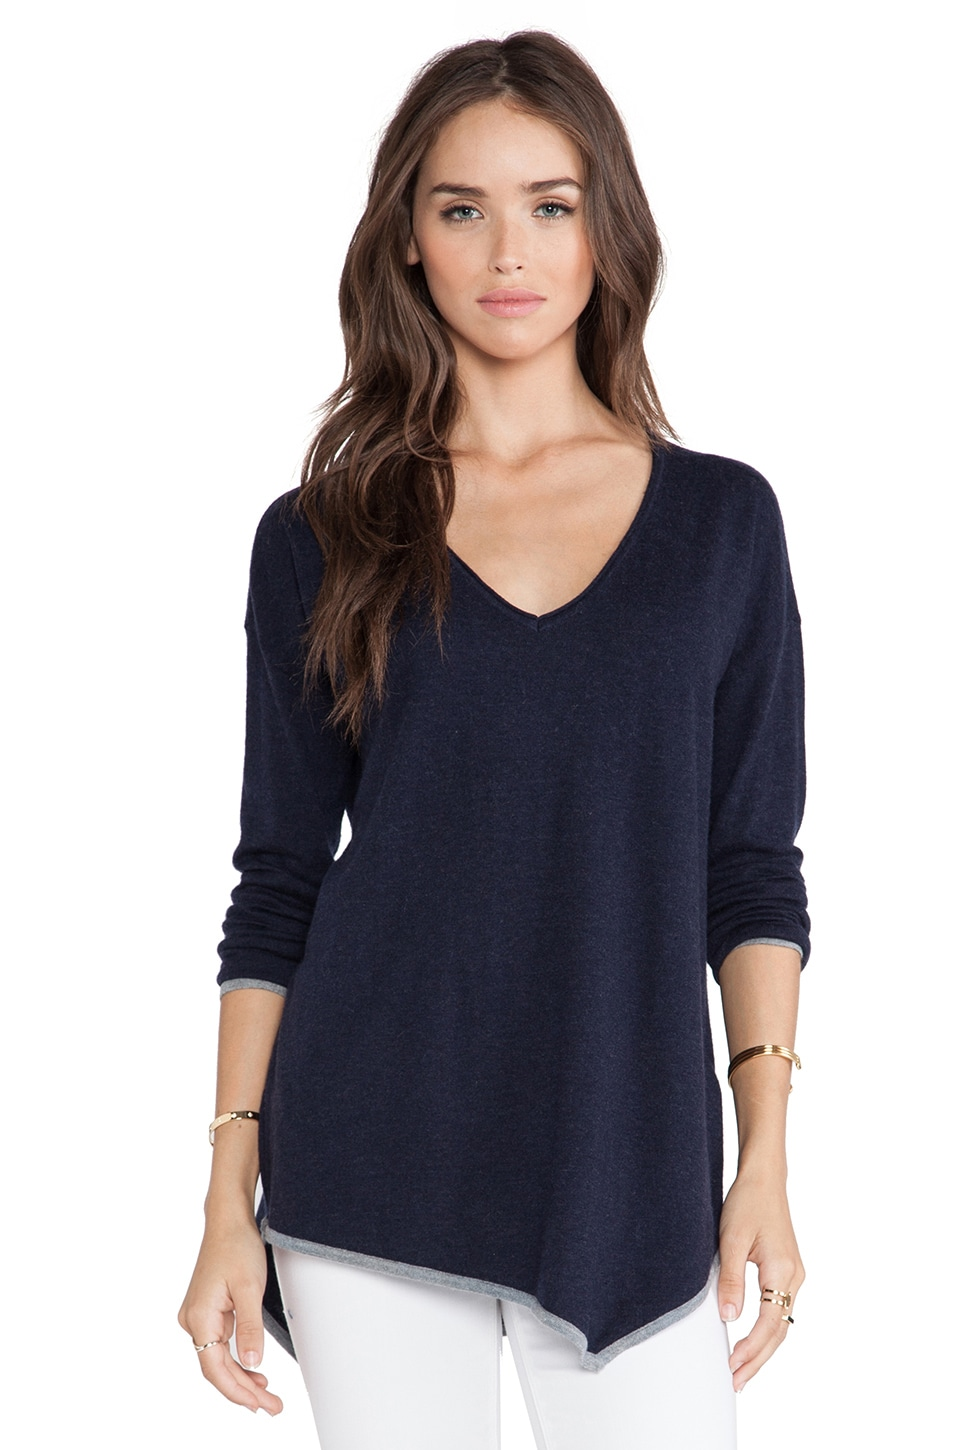 Joie Niami Sweater in Midnight Blue & Heather Grey